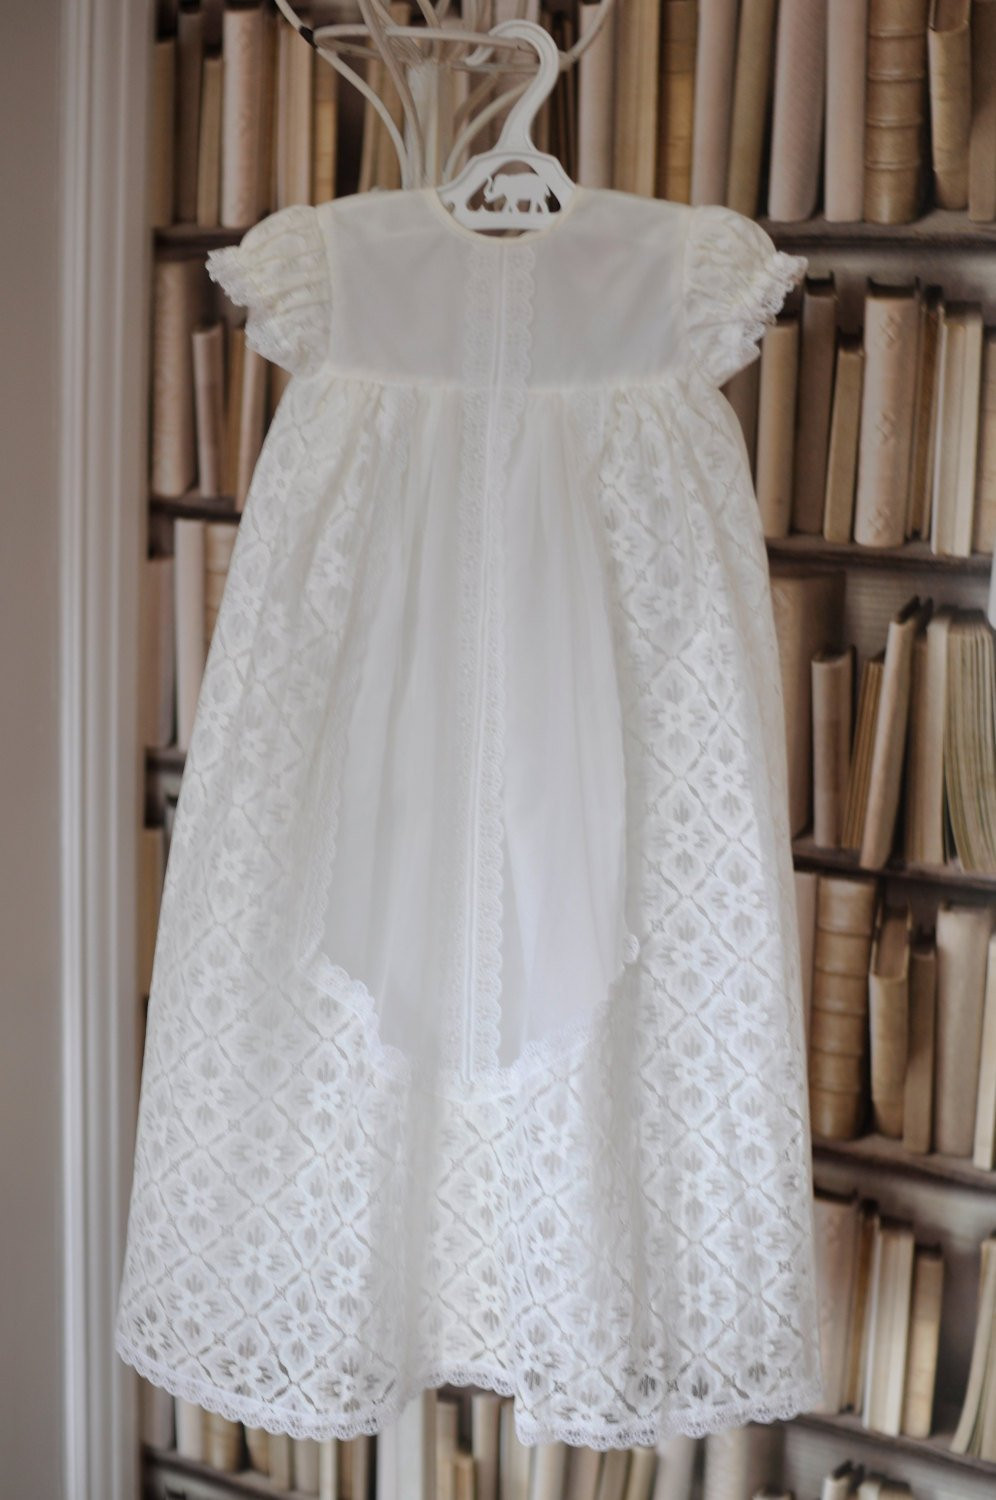 Lace Christening Dress Luxury Vintage Christening Gown Cream Lace Baptism Dress by Of Innovative 42 Images Lace Christening Dress